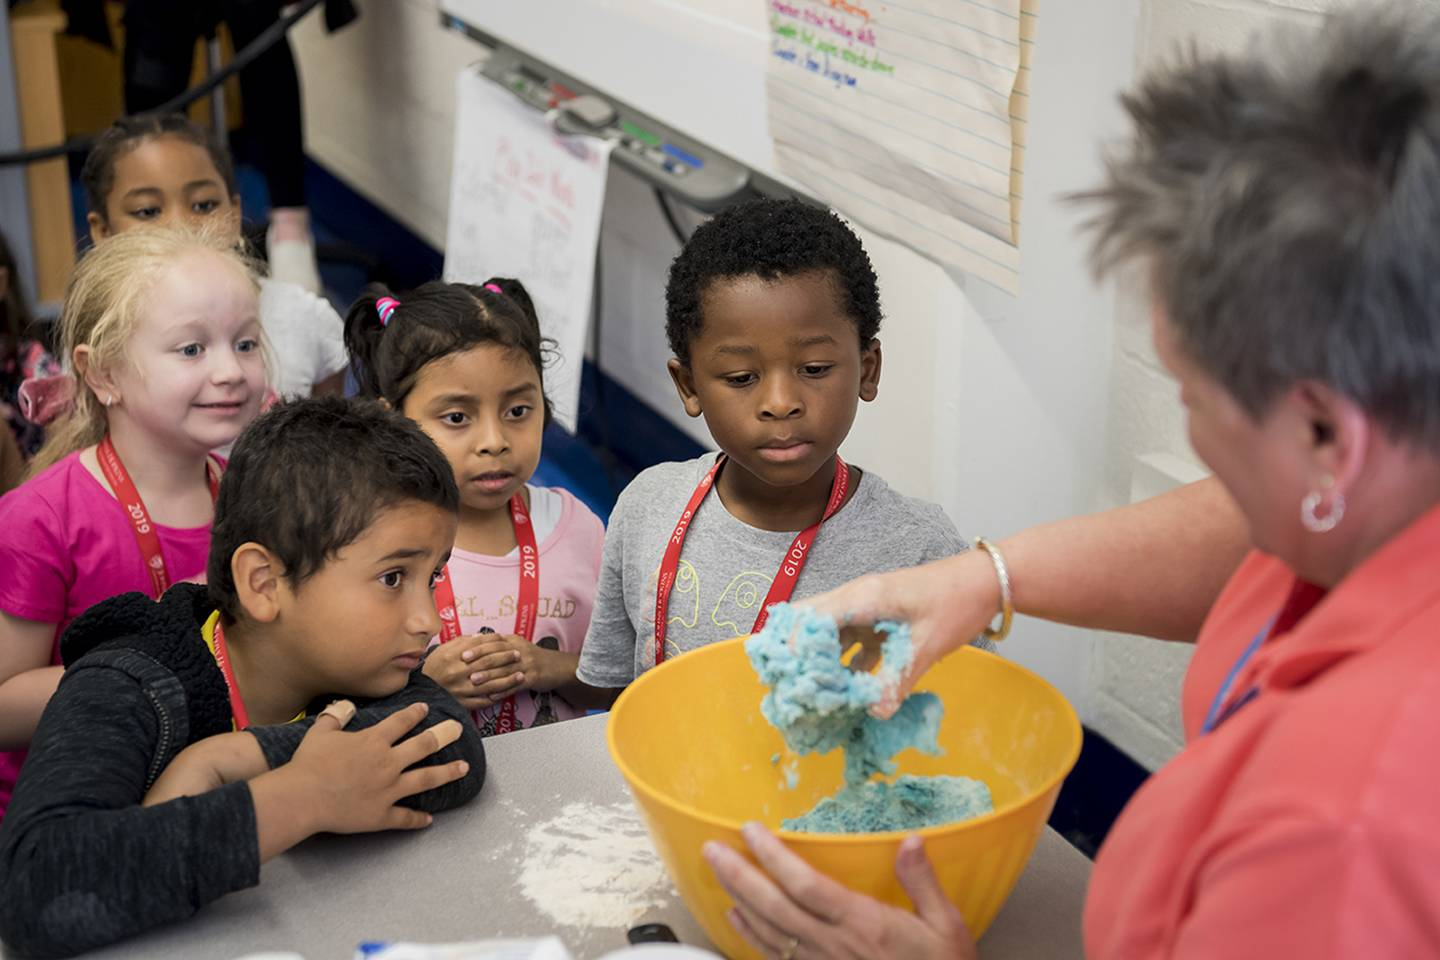 Students participating in the CTY Baltimore Emerging Scholars Summer Program add household ingredients together to make Play Doh during their Toyology class at Commodore John Rodgers Elementary/Middle School.